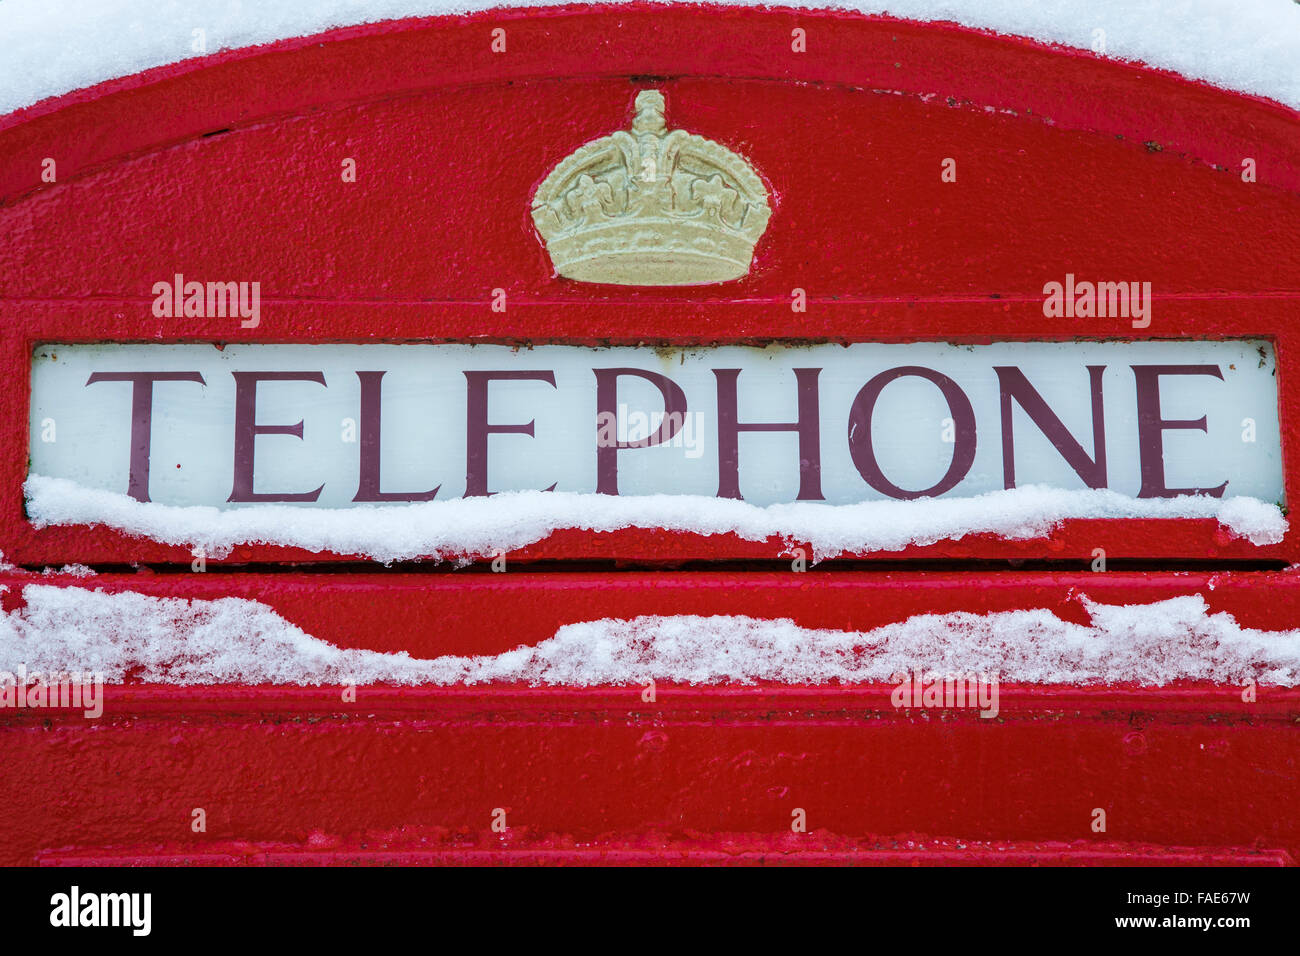 Old fashioned red telephone box in the snow, UK - Stock Image